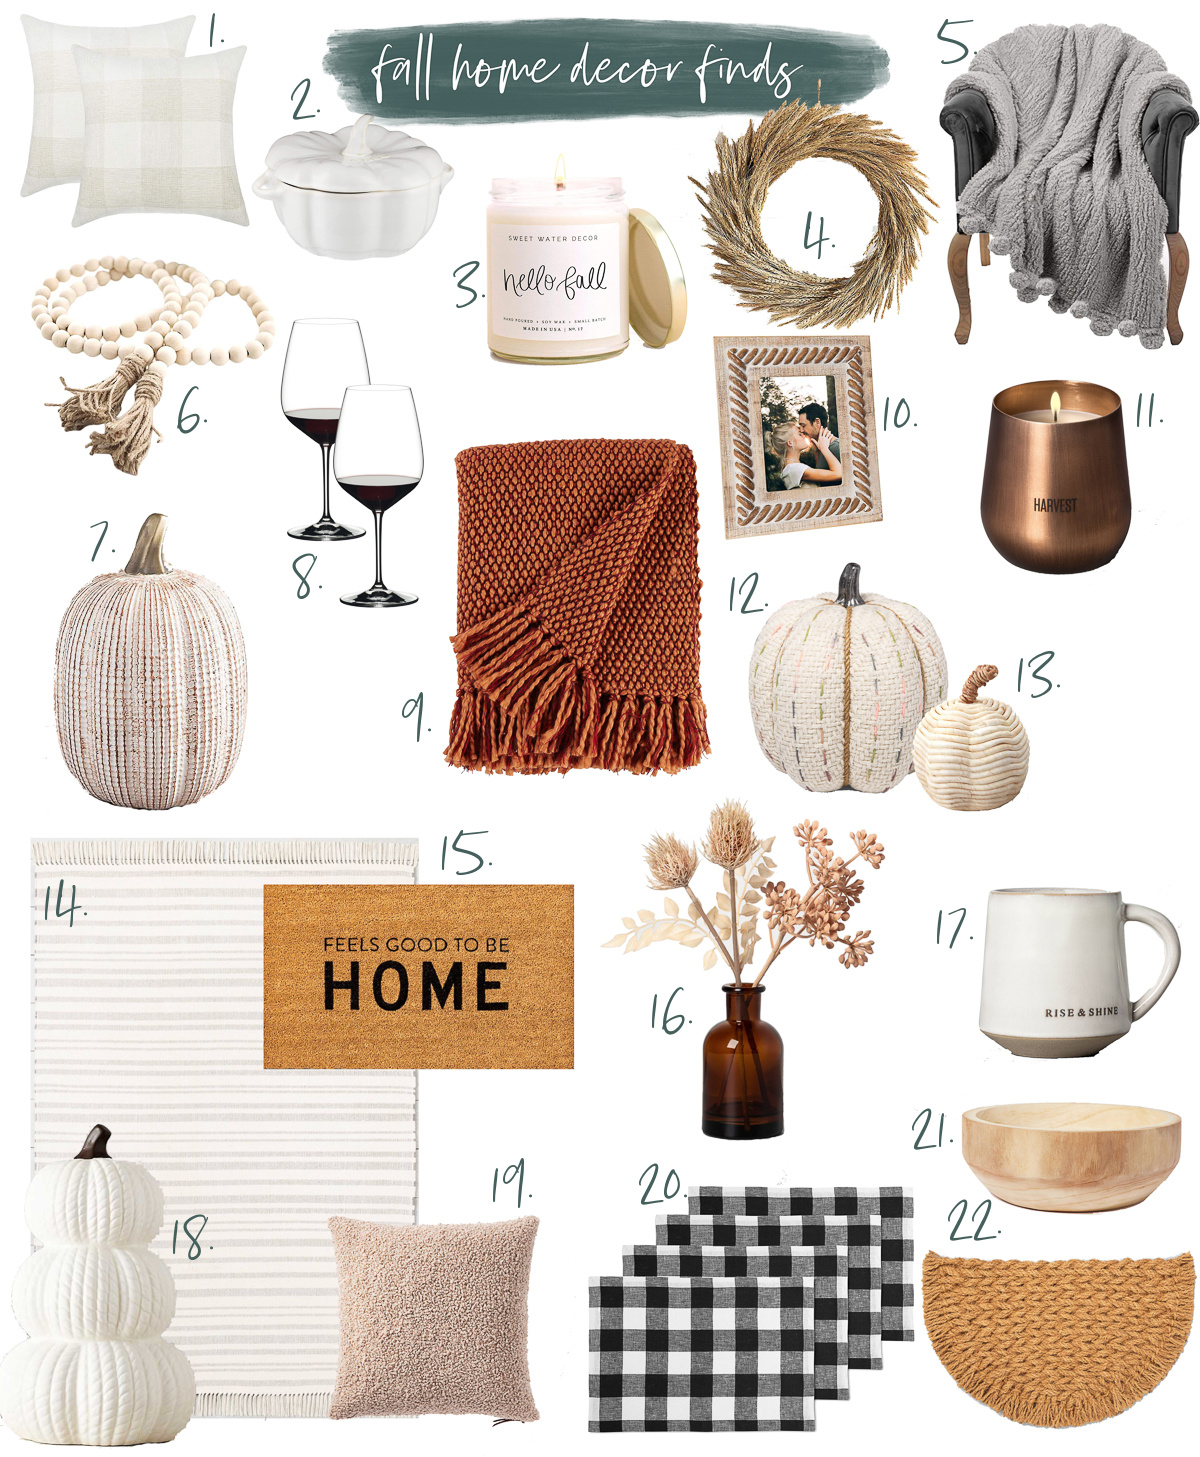 Fall Home Decor Finds Life With Emily